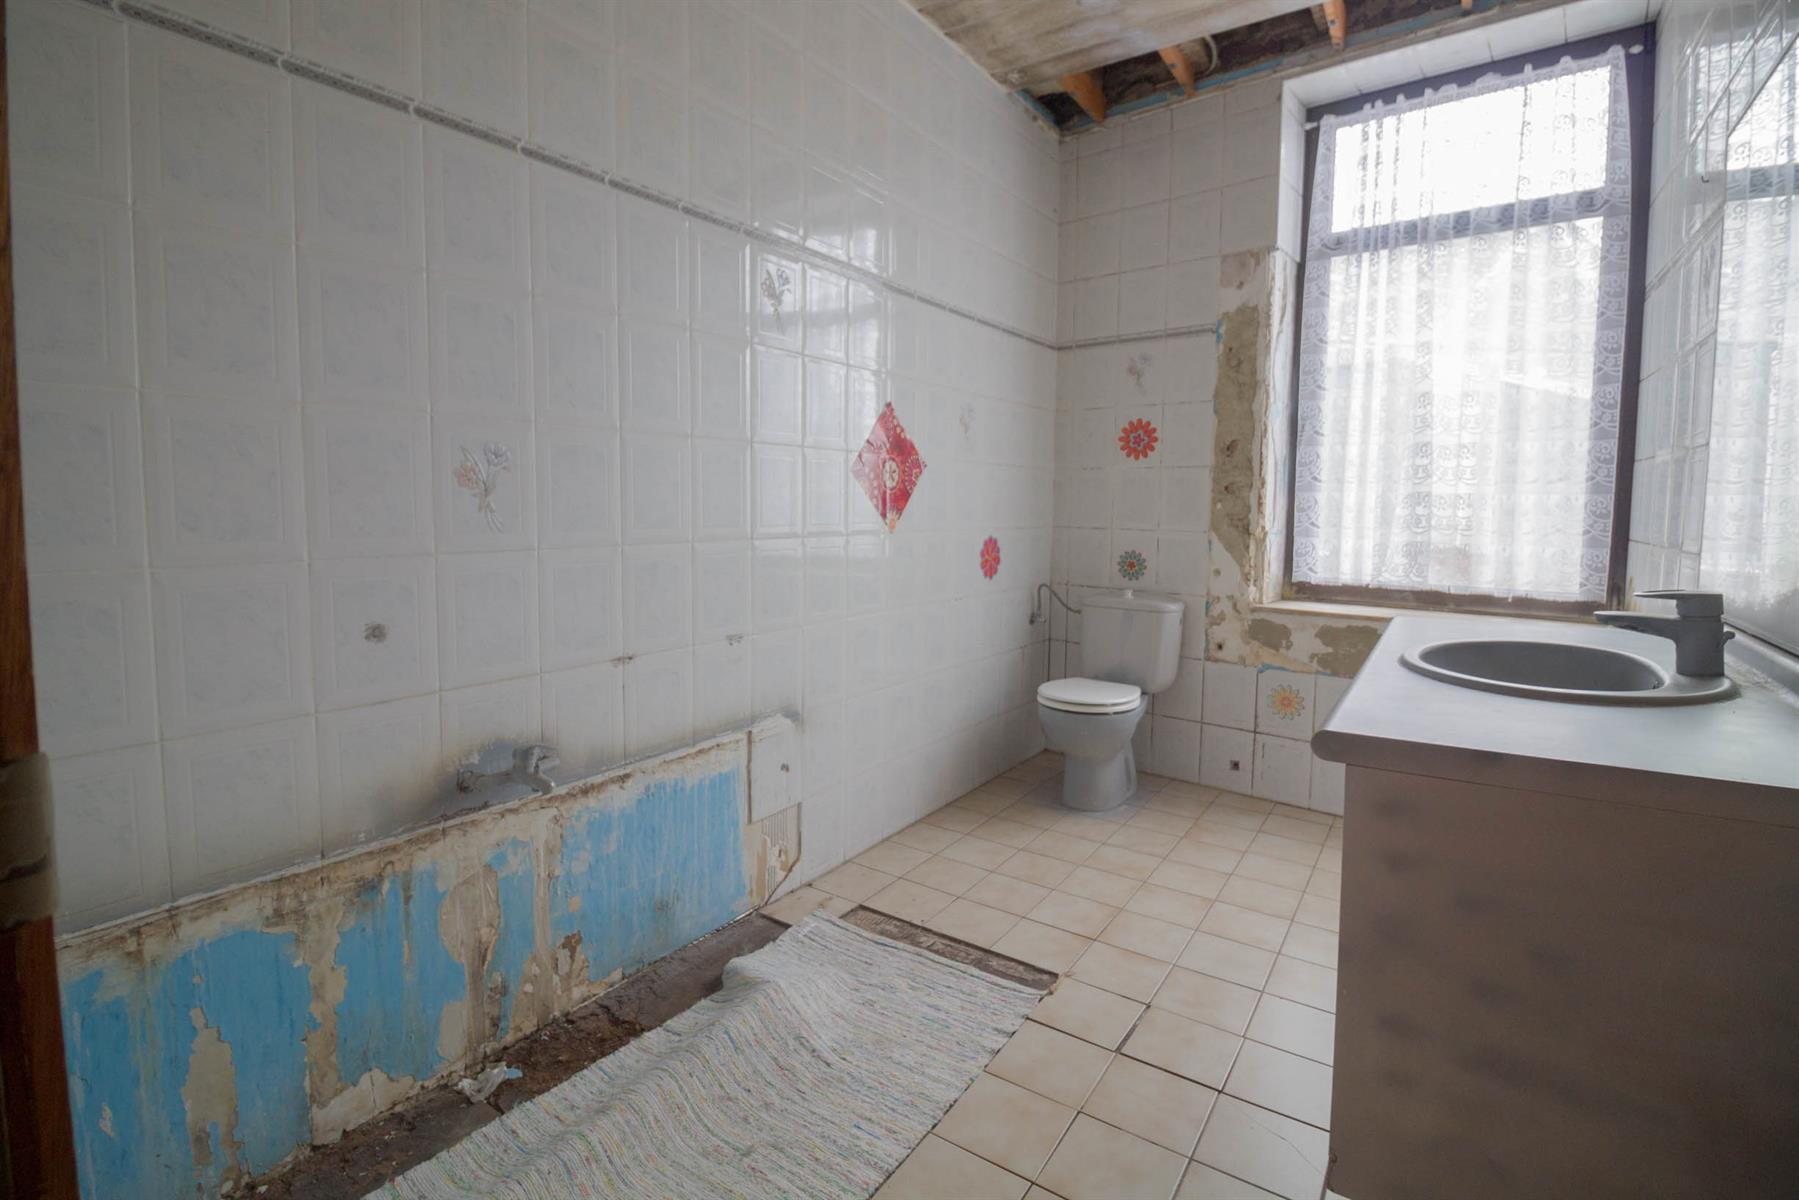 Maison - Courcelles (Trazegnies) - #4445047-16